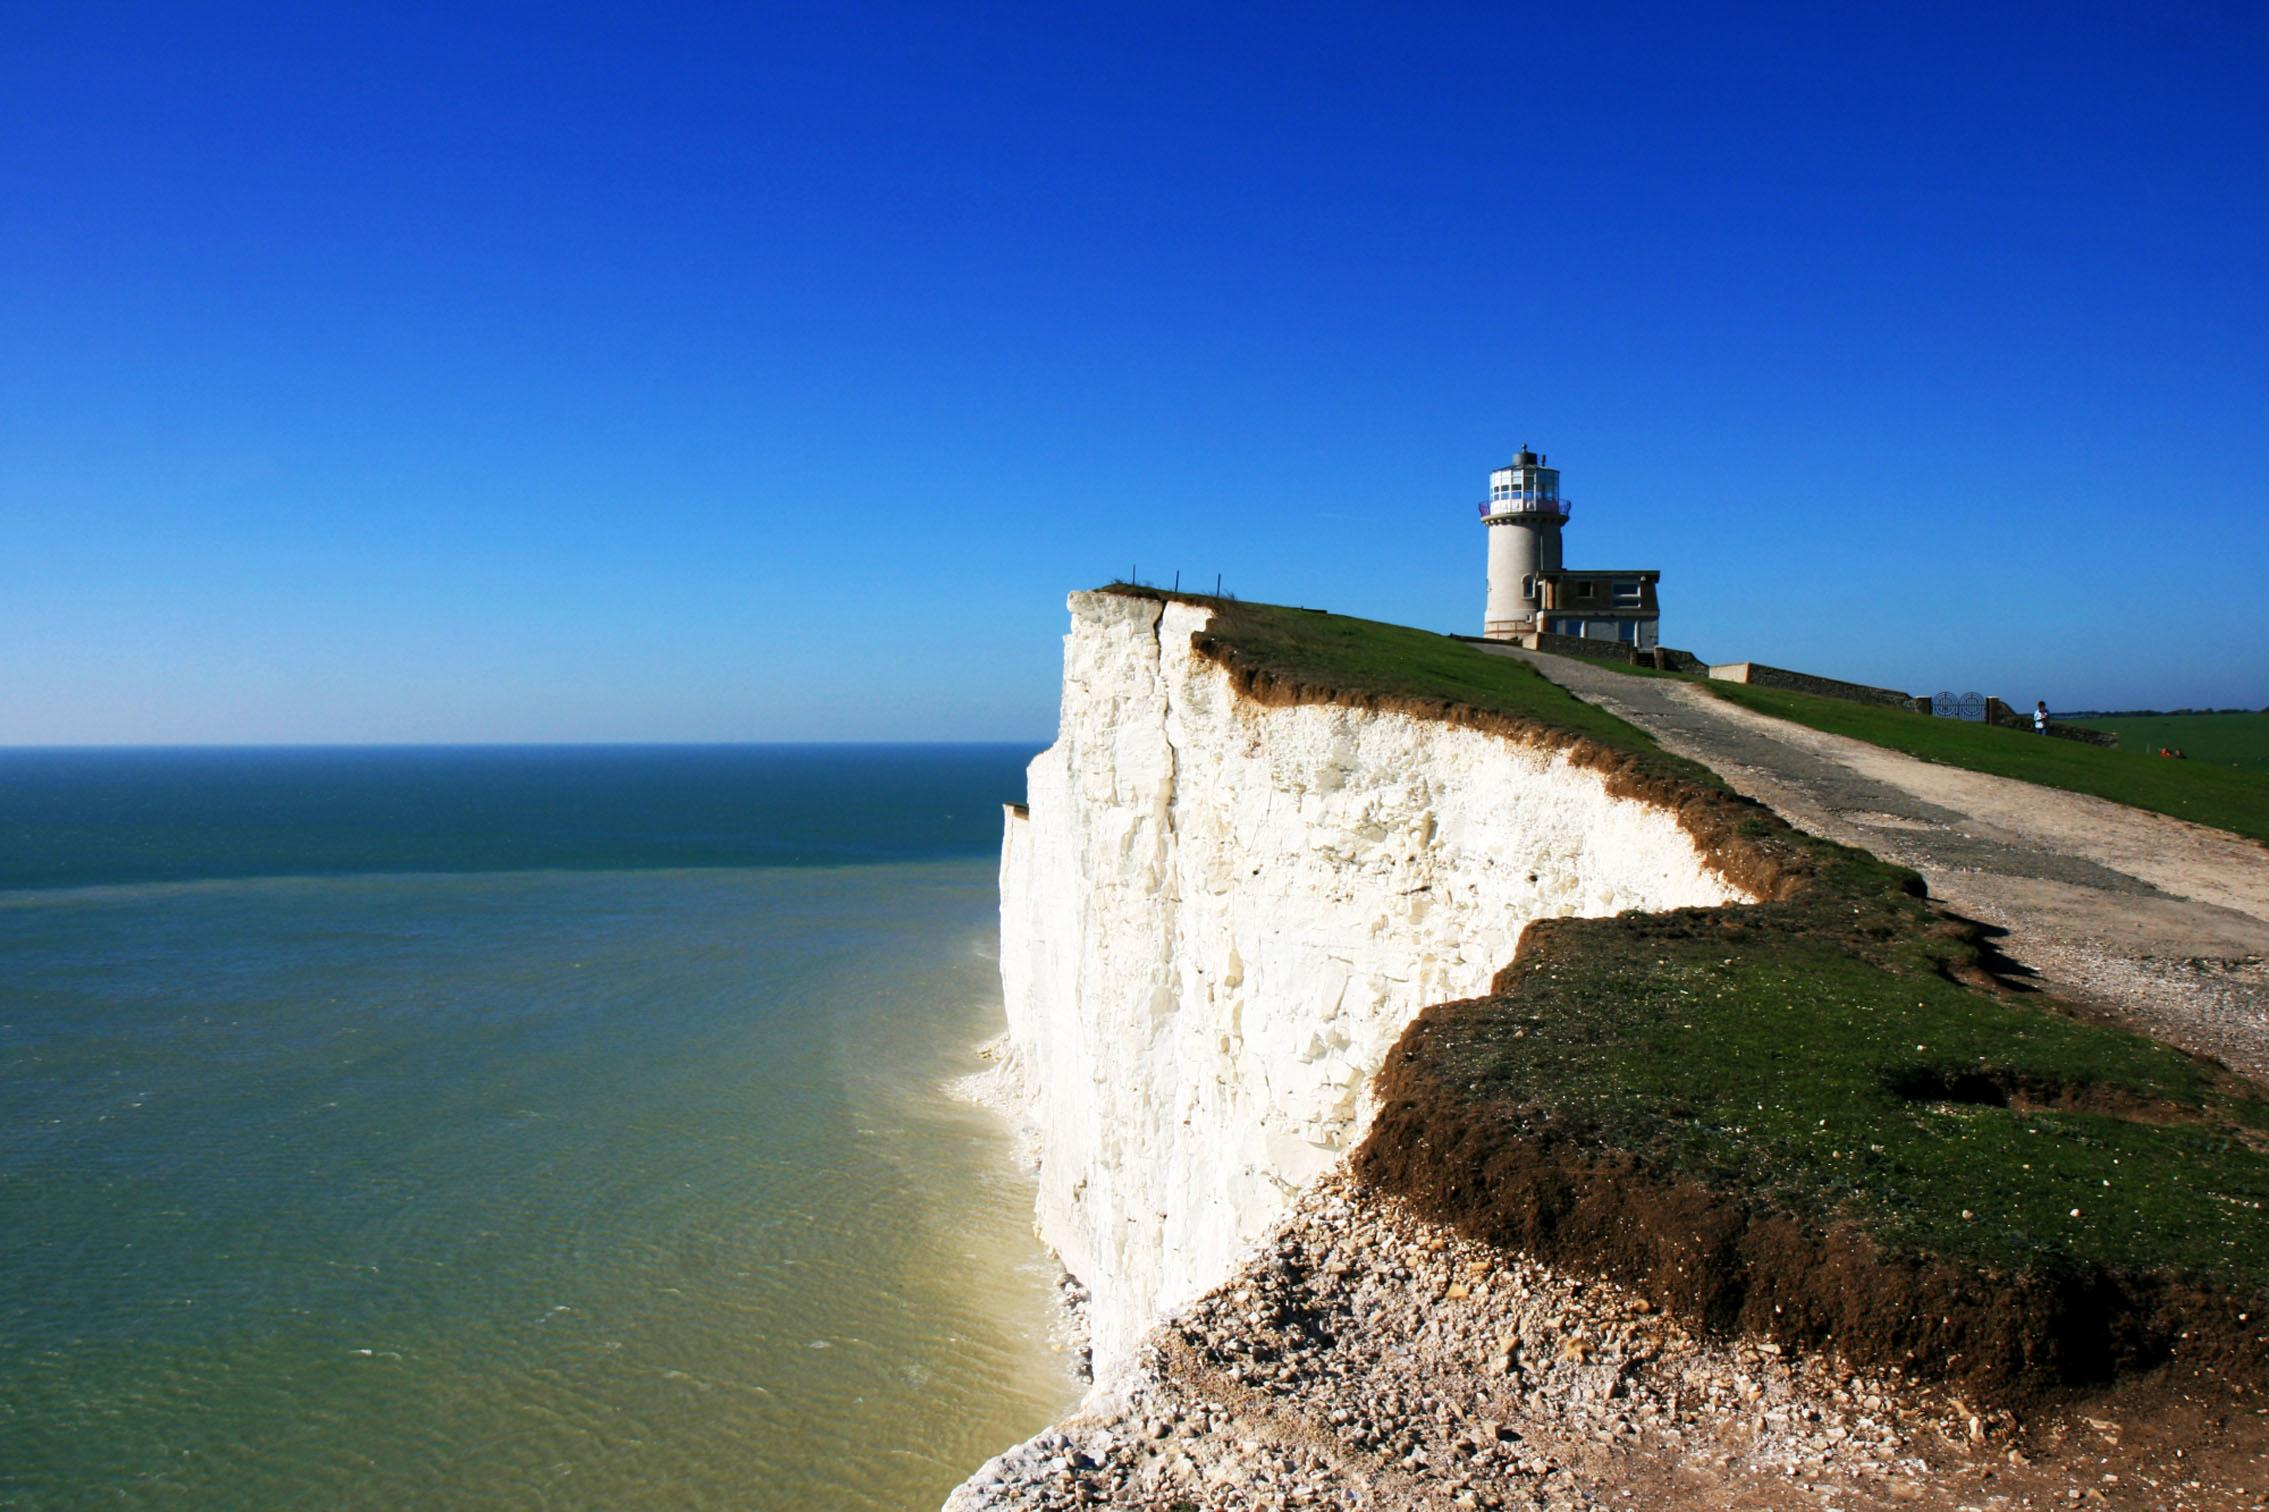 Stay in a lighthouse: England's 5 best